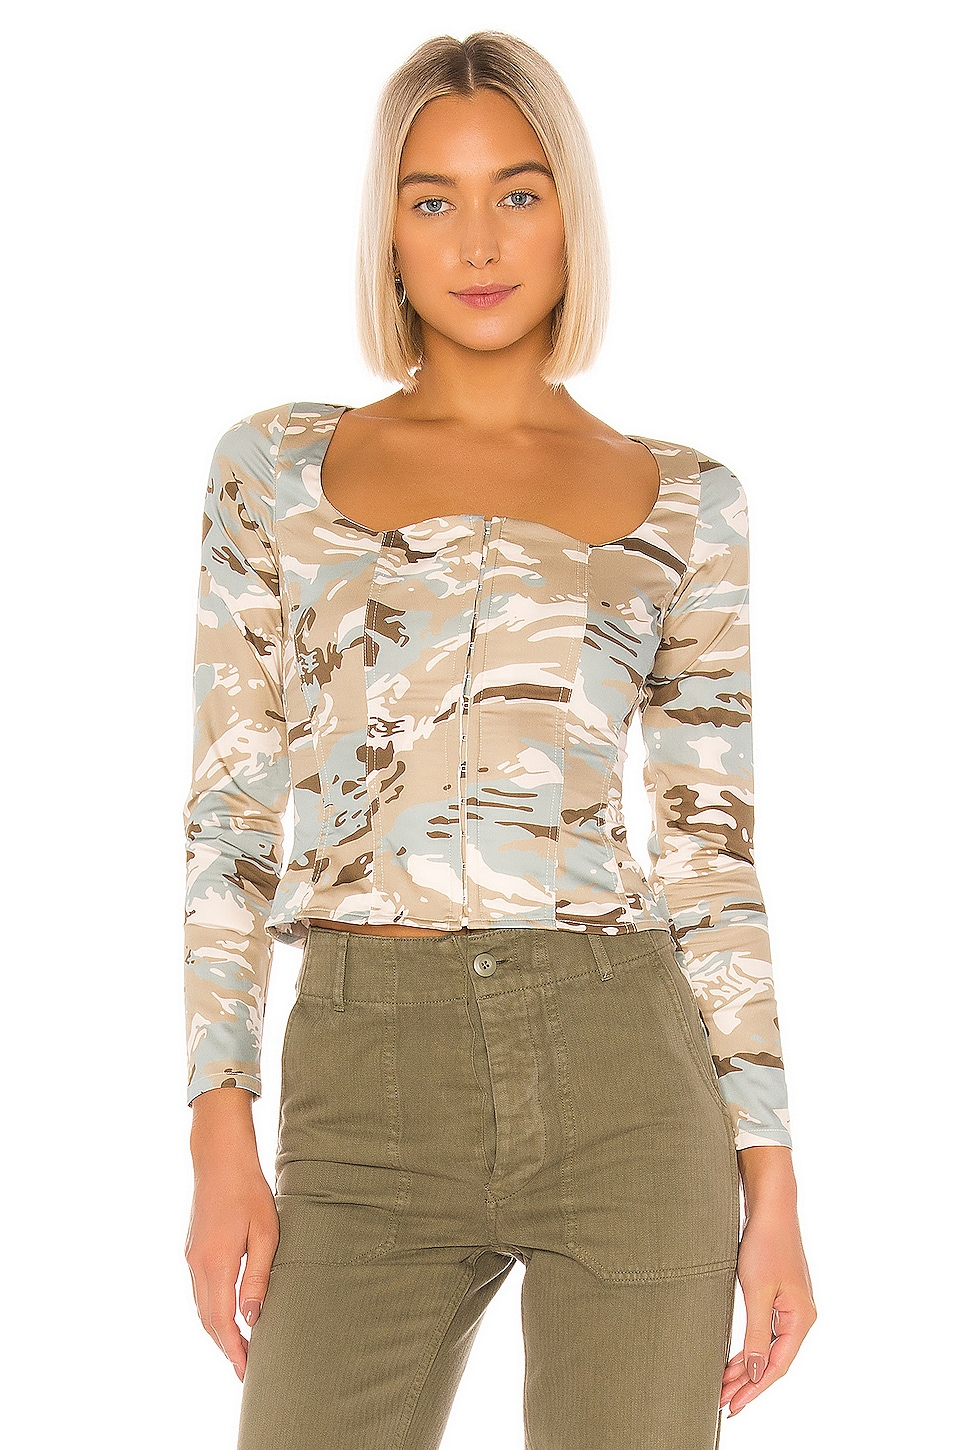 Miaou Devon Blouse in Green Camo